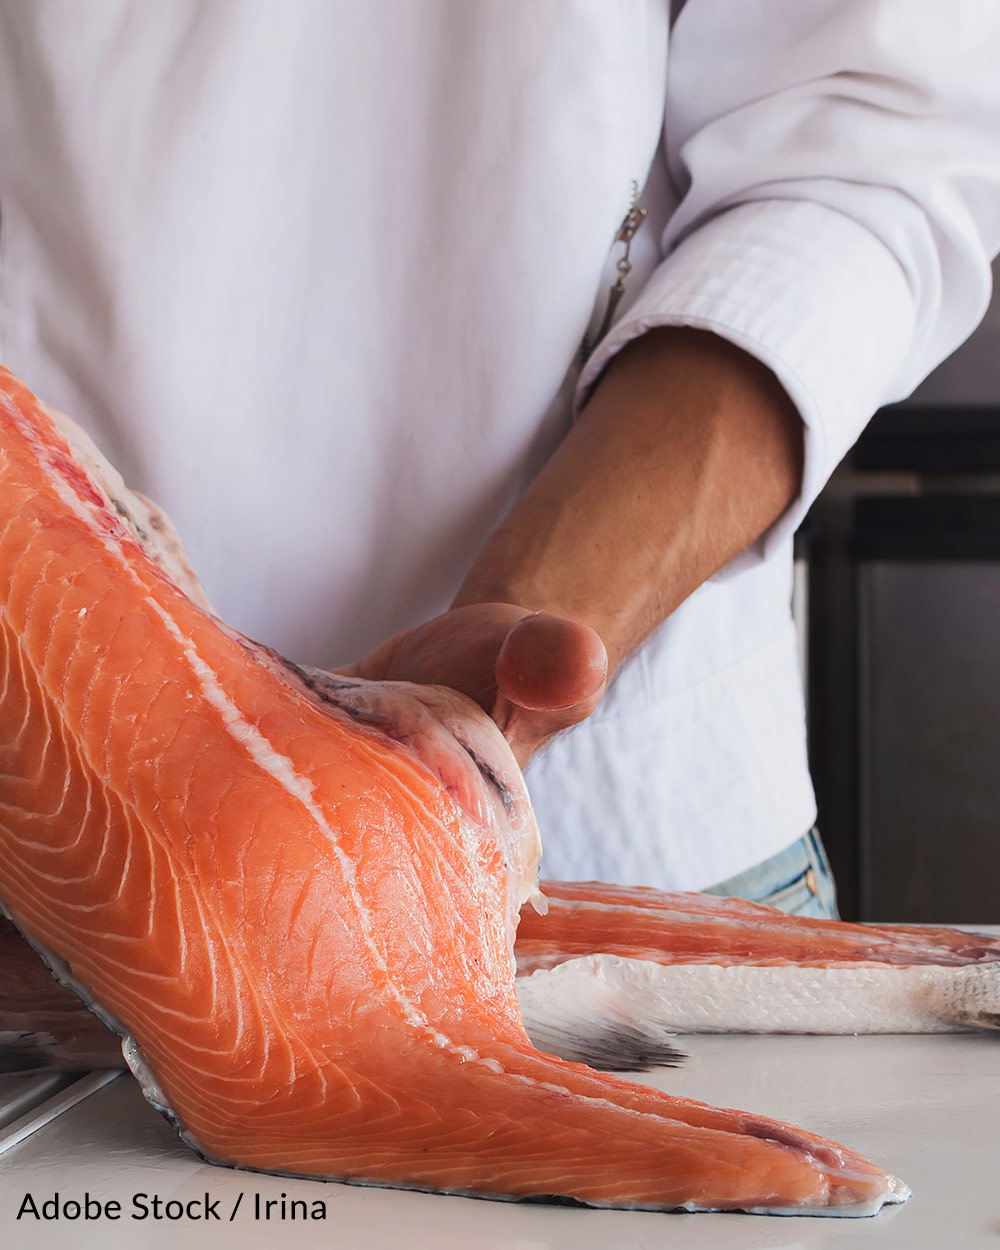 Tell the FDA that genetically engineered salmon doesn't belong on our dinner tables!